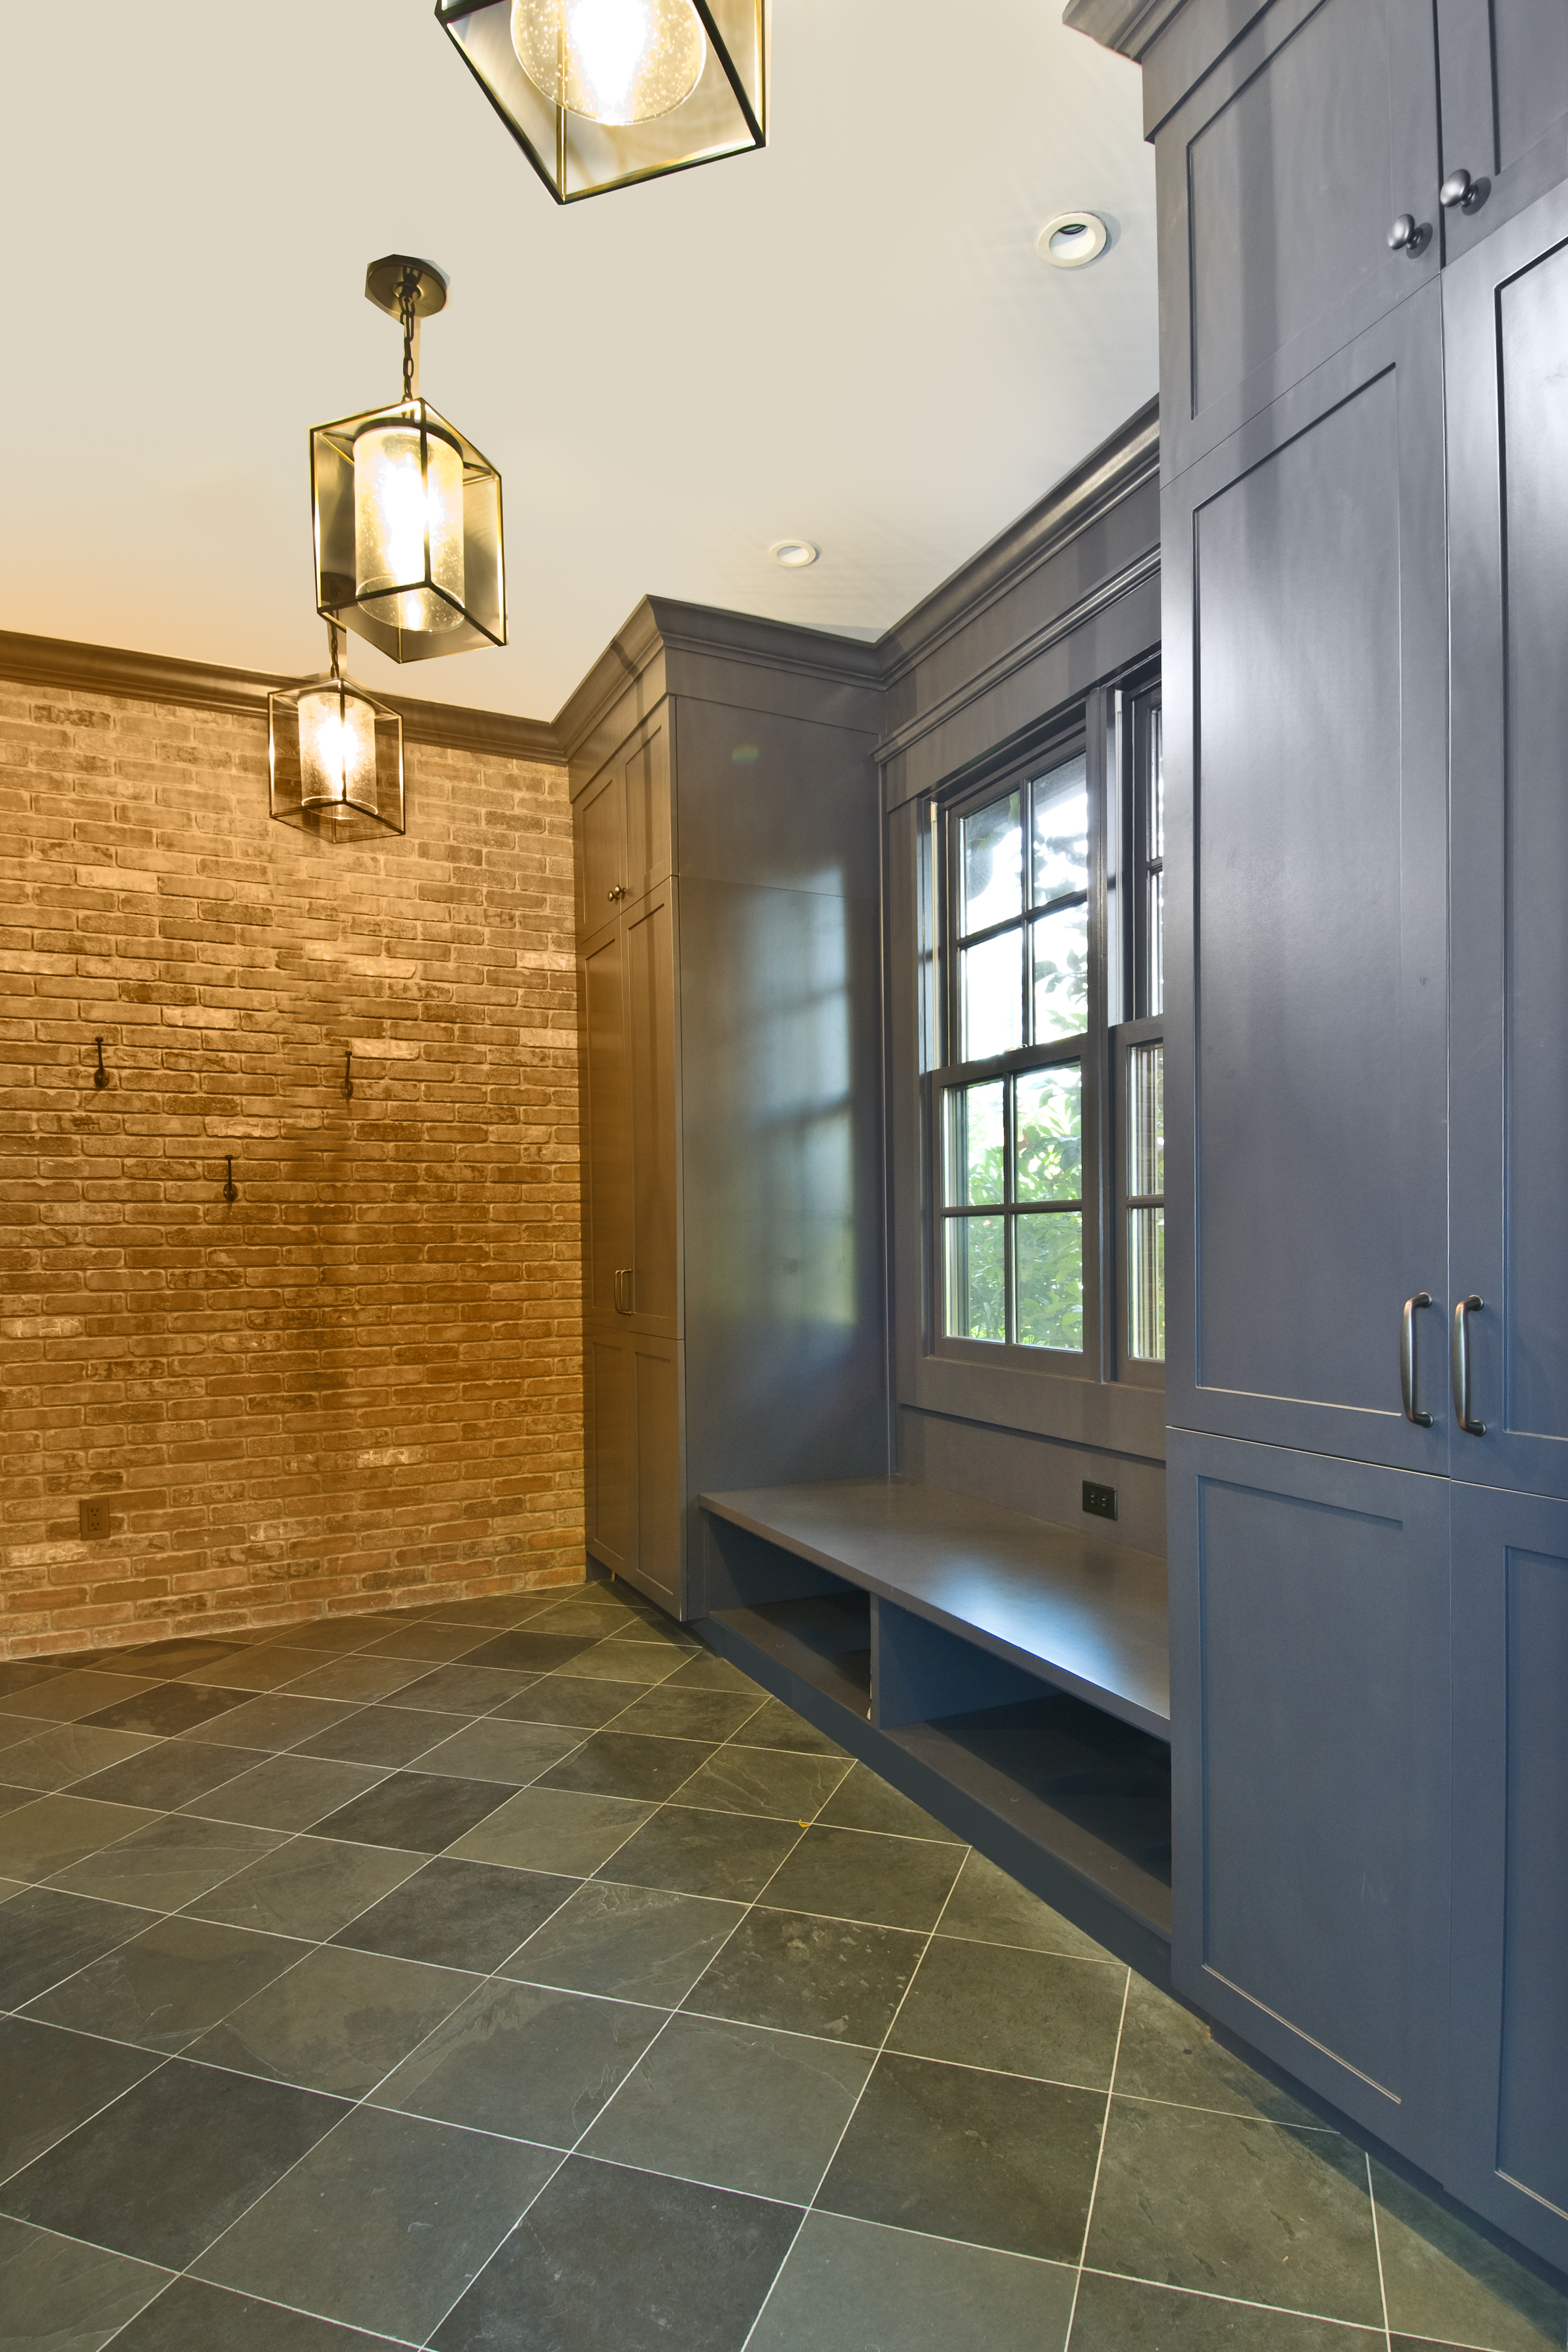 P1_-_Int_1A_-_Mudroom_view_-_final_looking_from_the_porch_into_the_mudroom